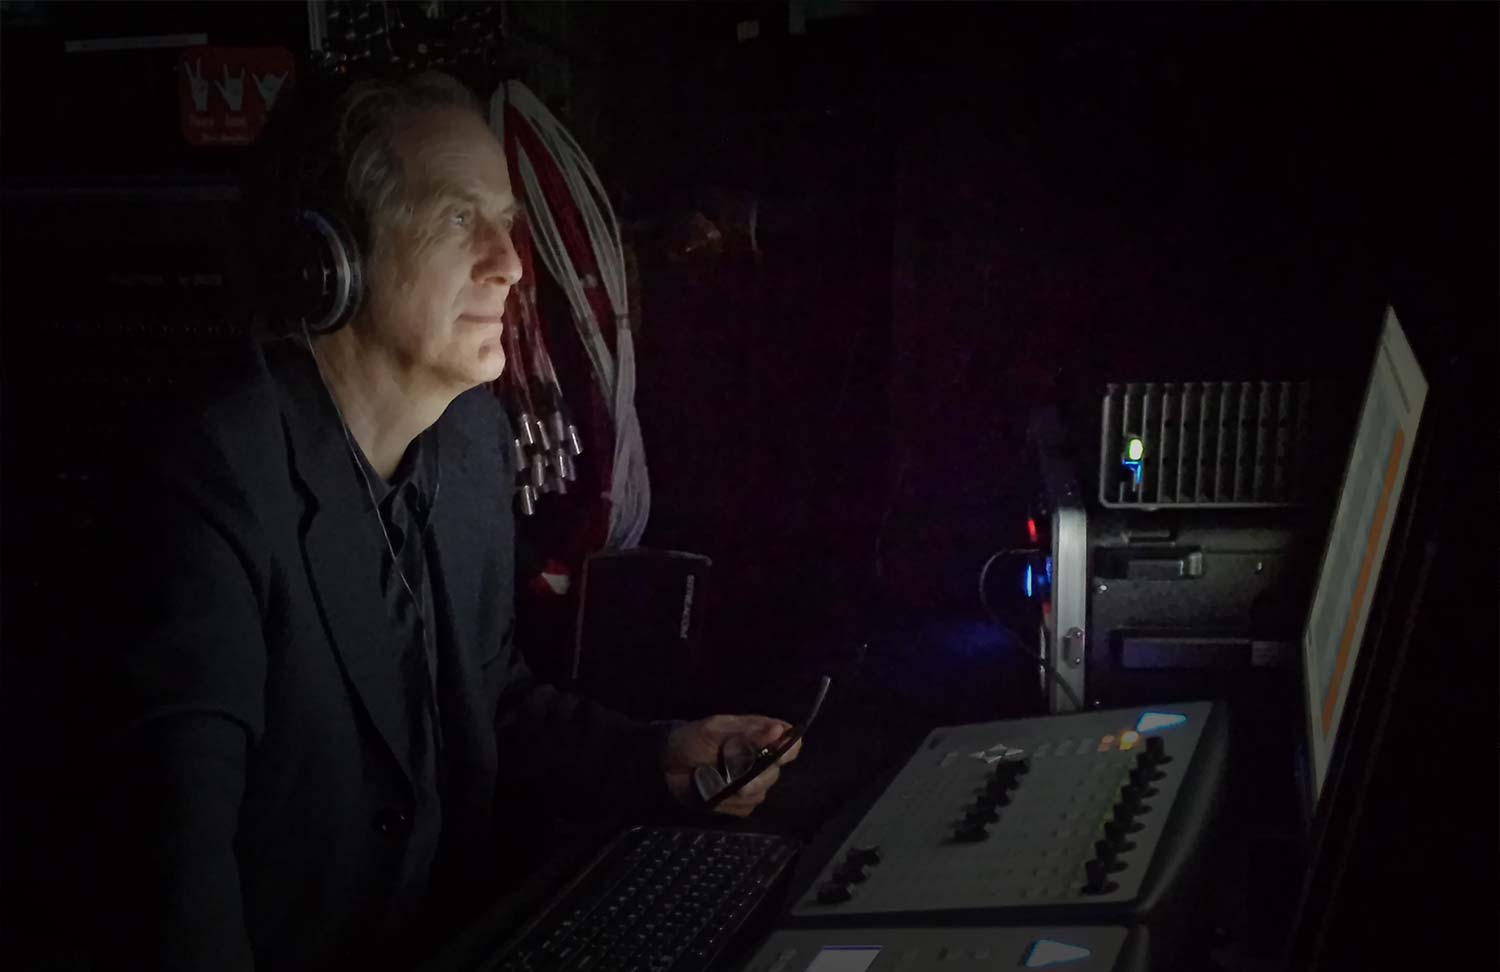 Audio engineer Andreas Klein